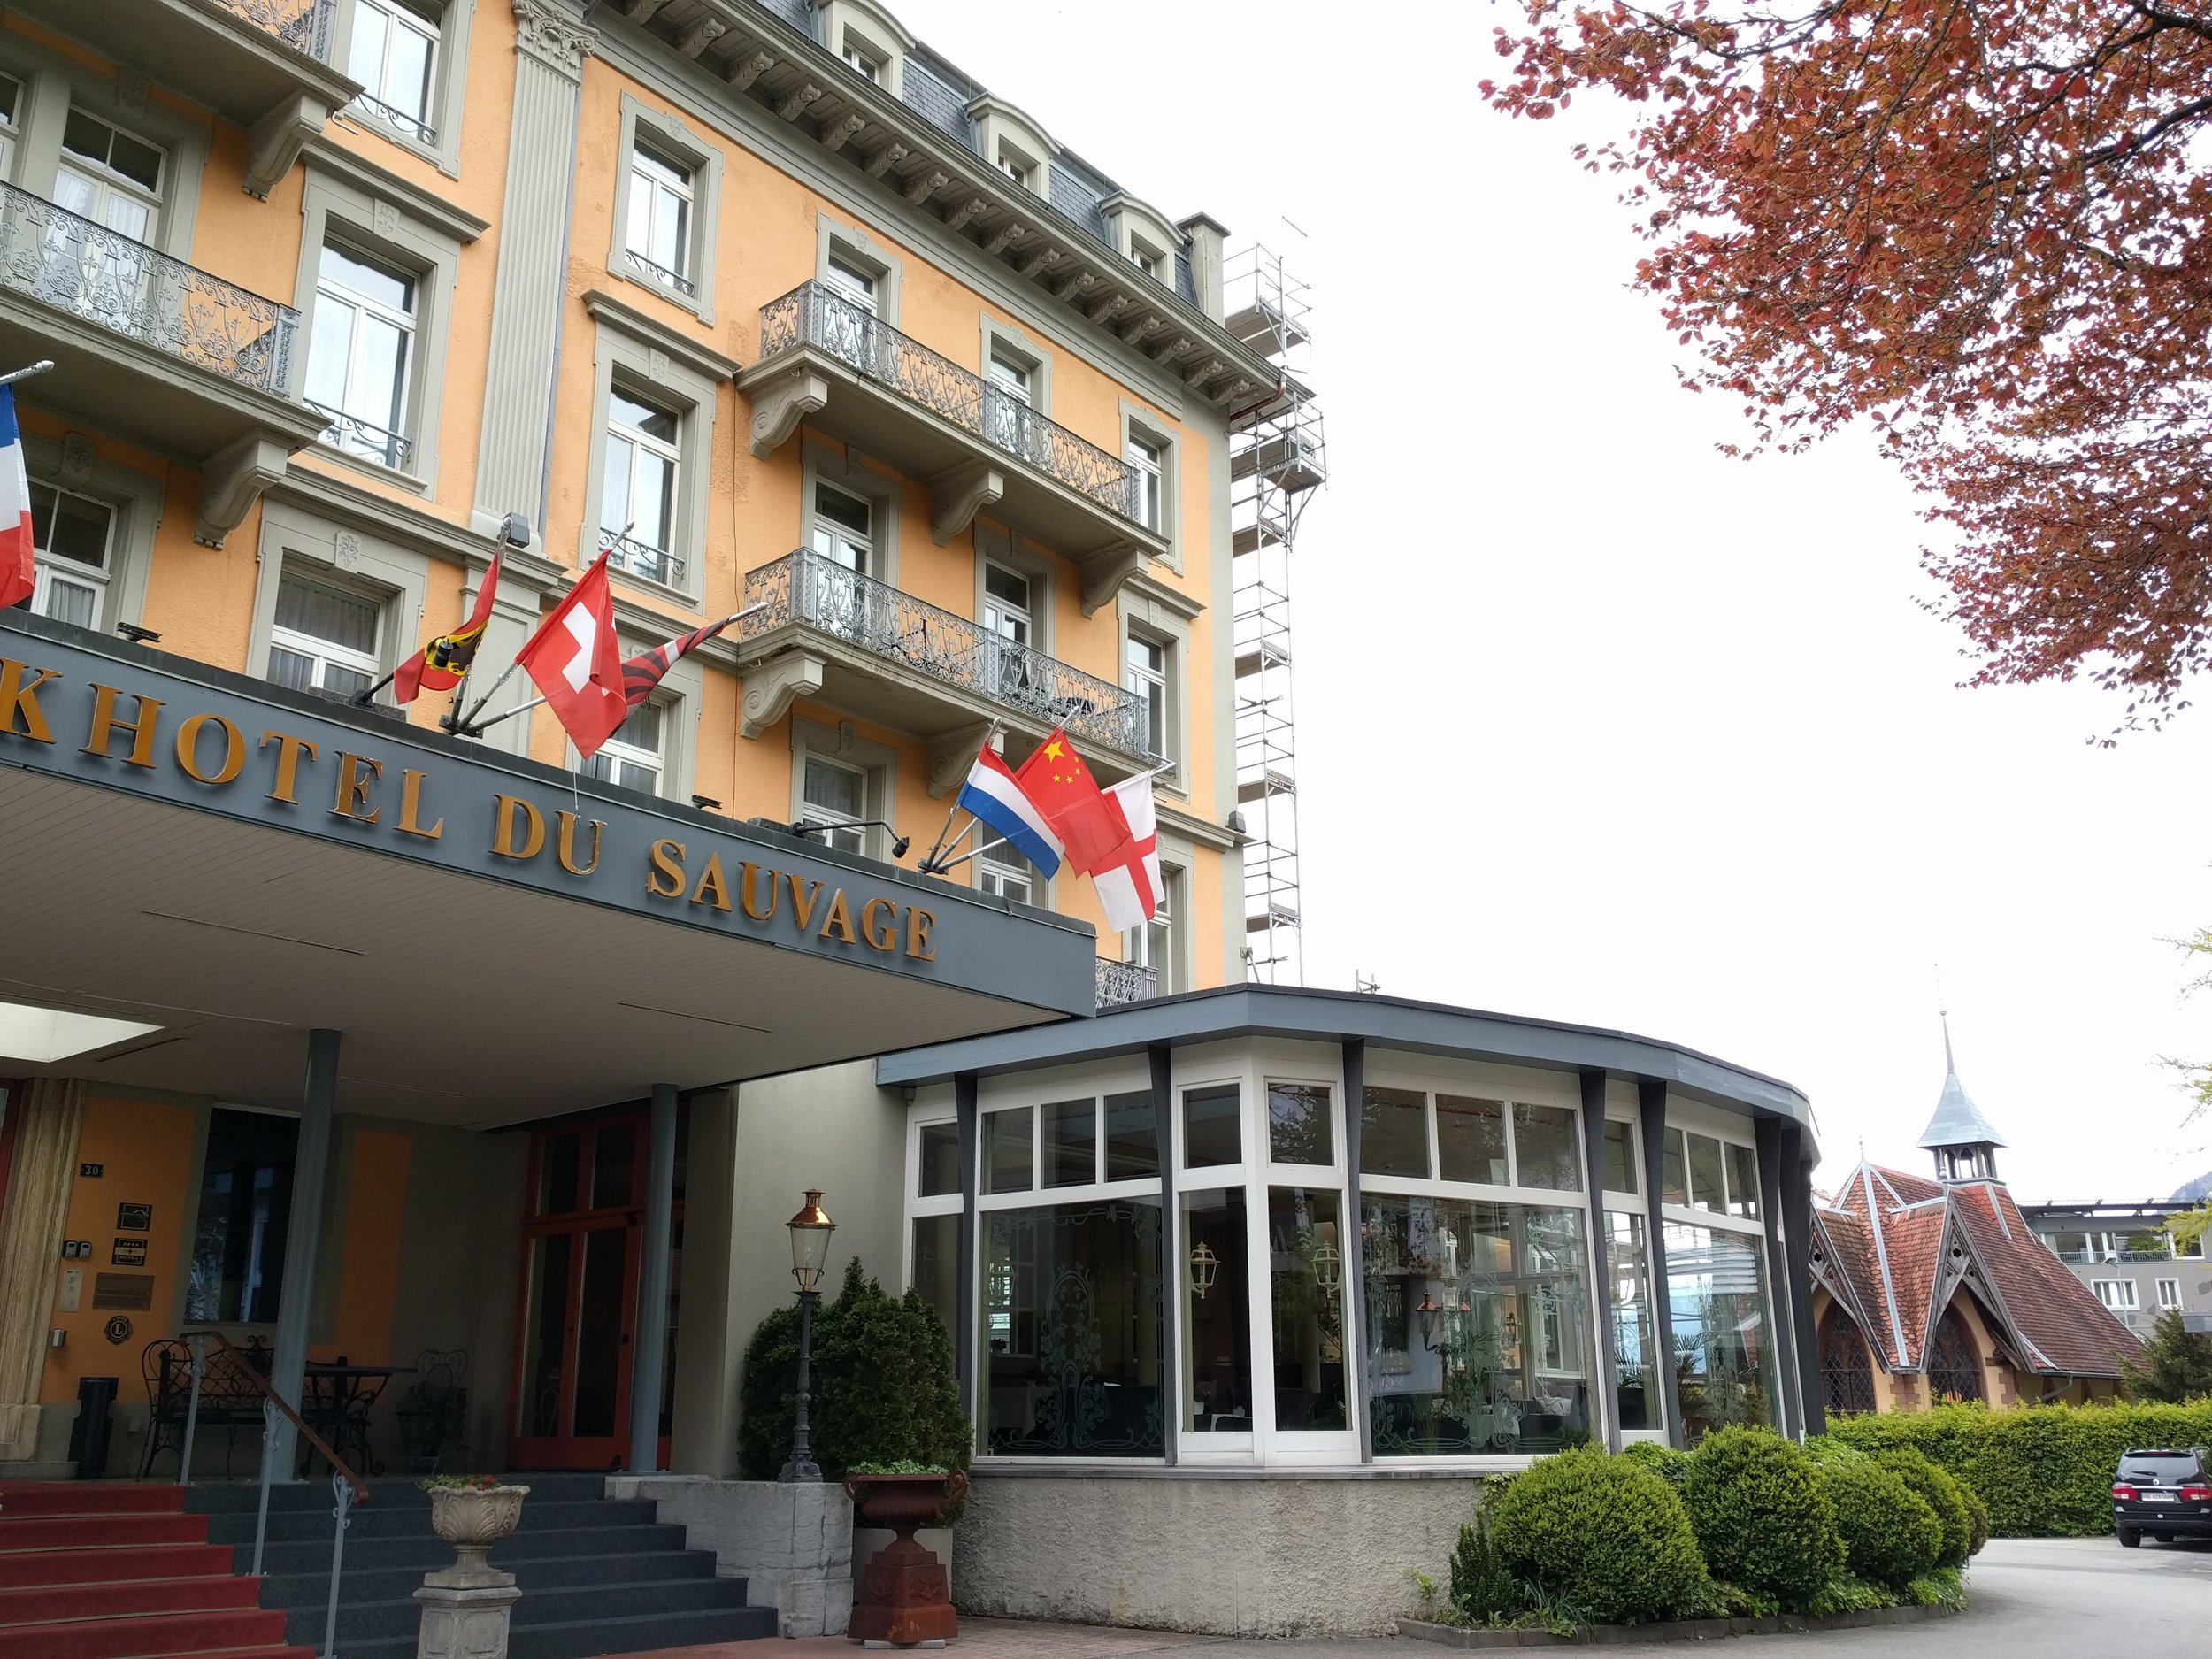 This is the real hotel where the fake Holmes and Watson slept the night before their fateful climb up to the Reichenbach Falls, where someone would meet his DOOOM!